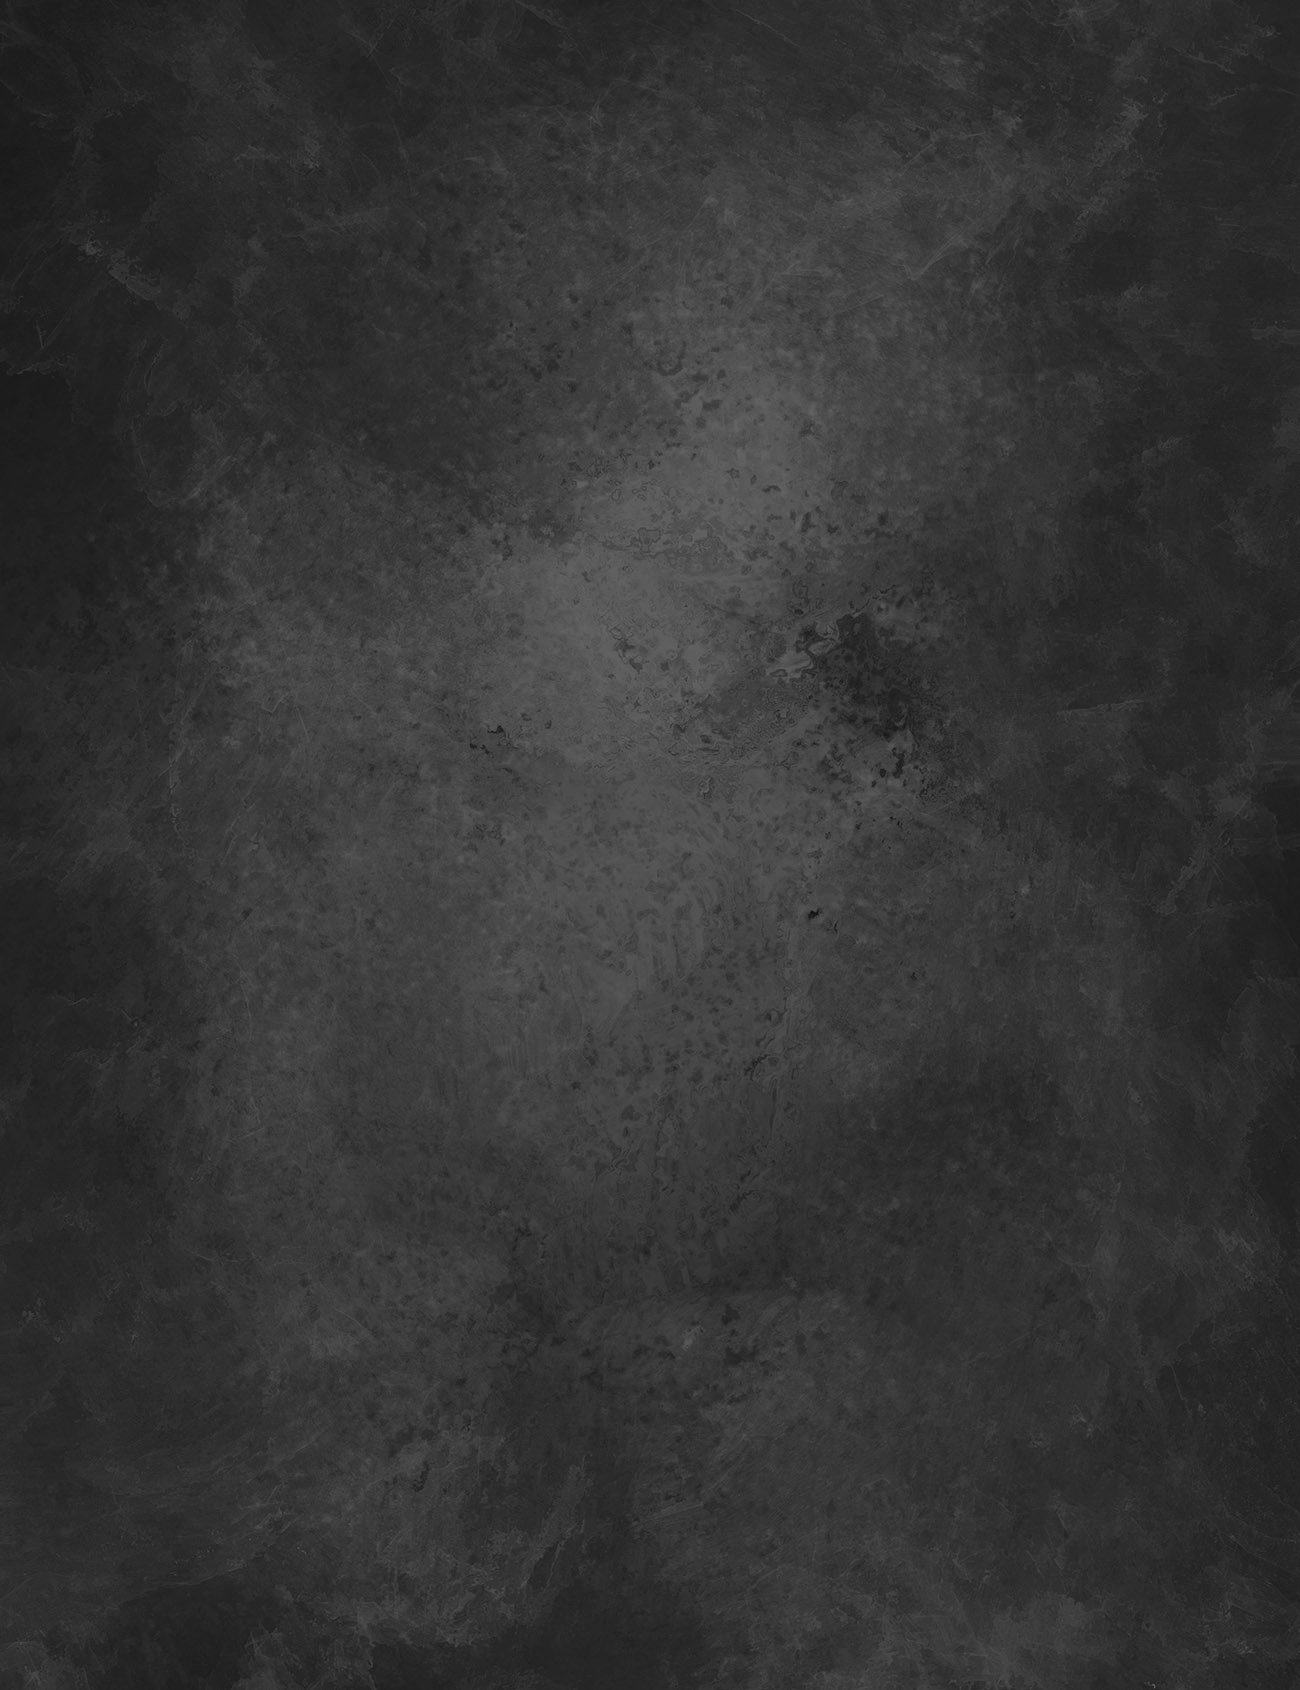 Dark Background With Marble Texture Backdrop For